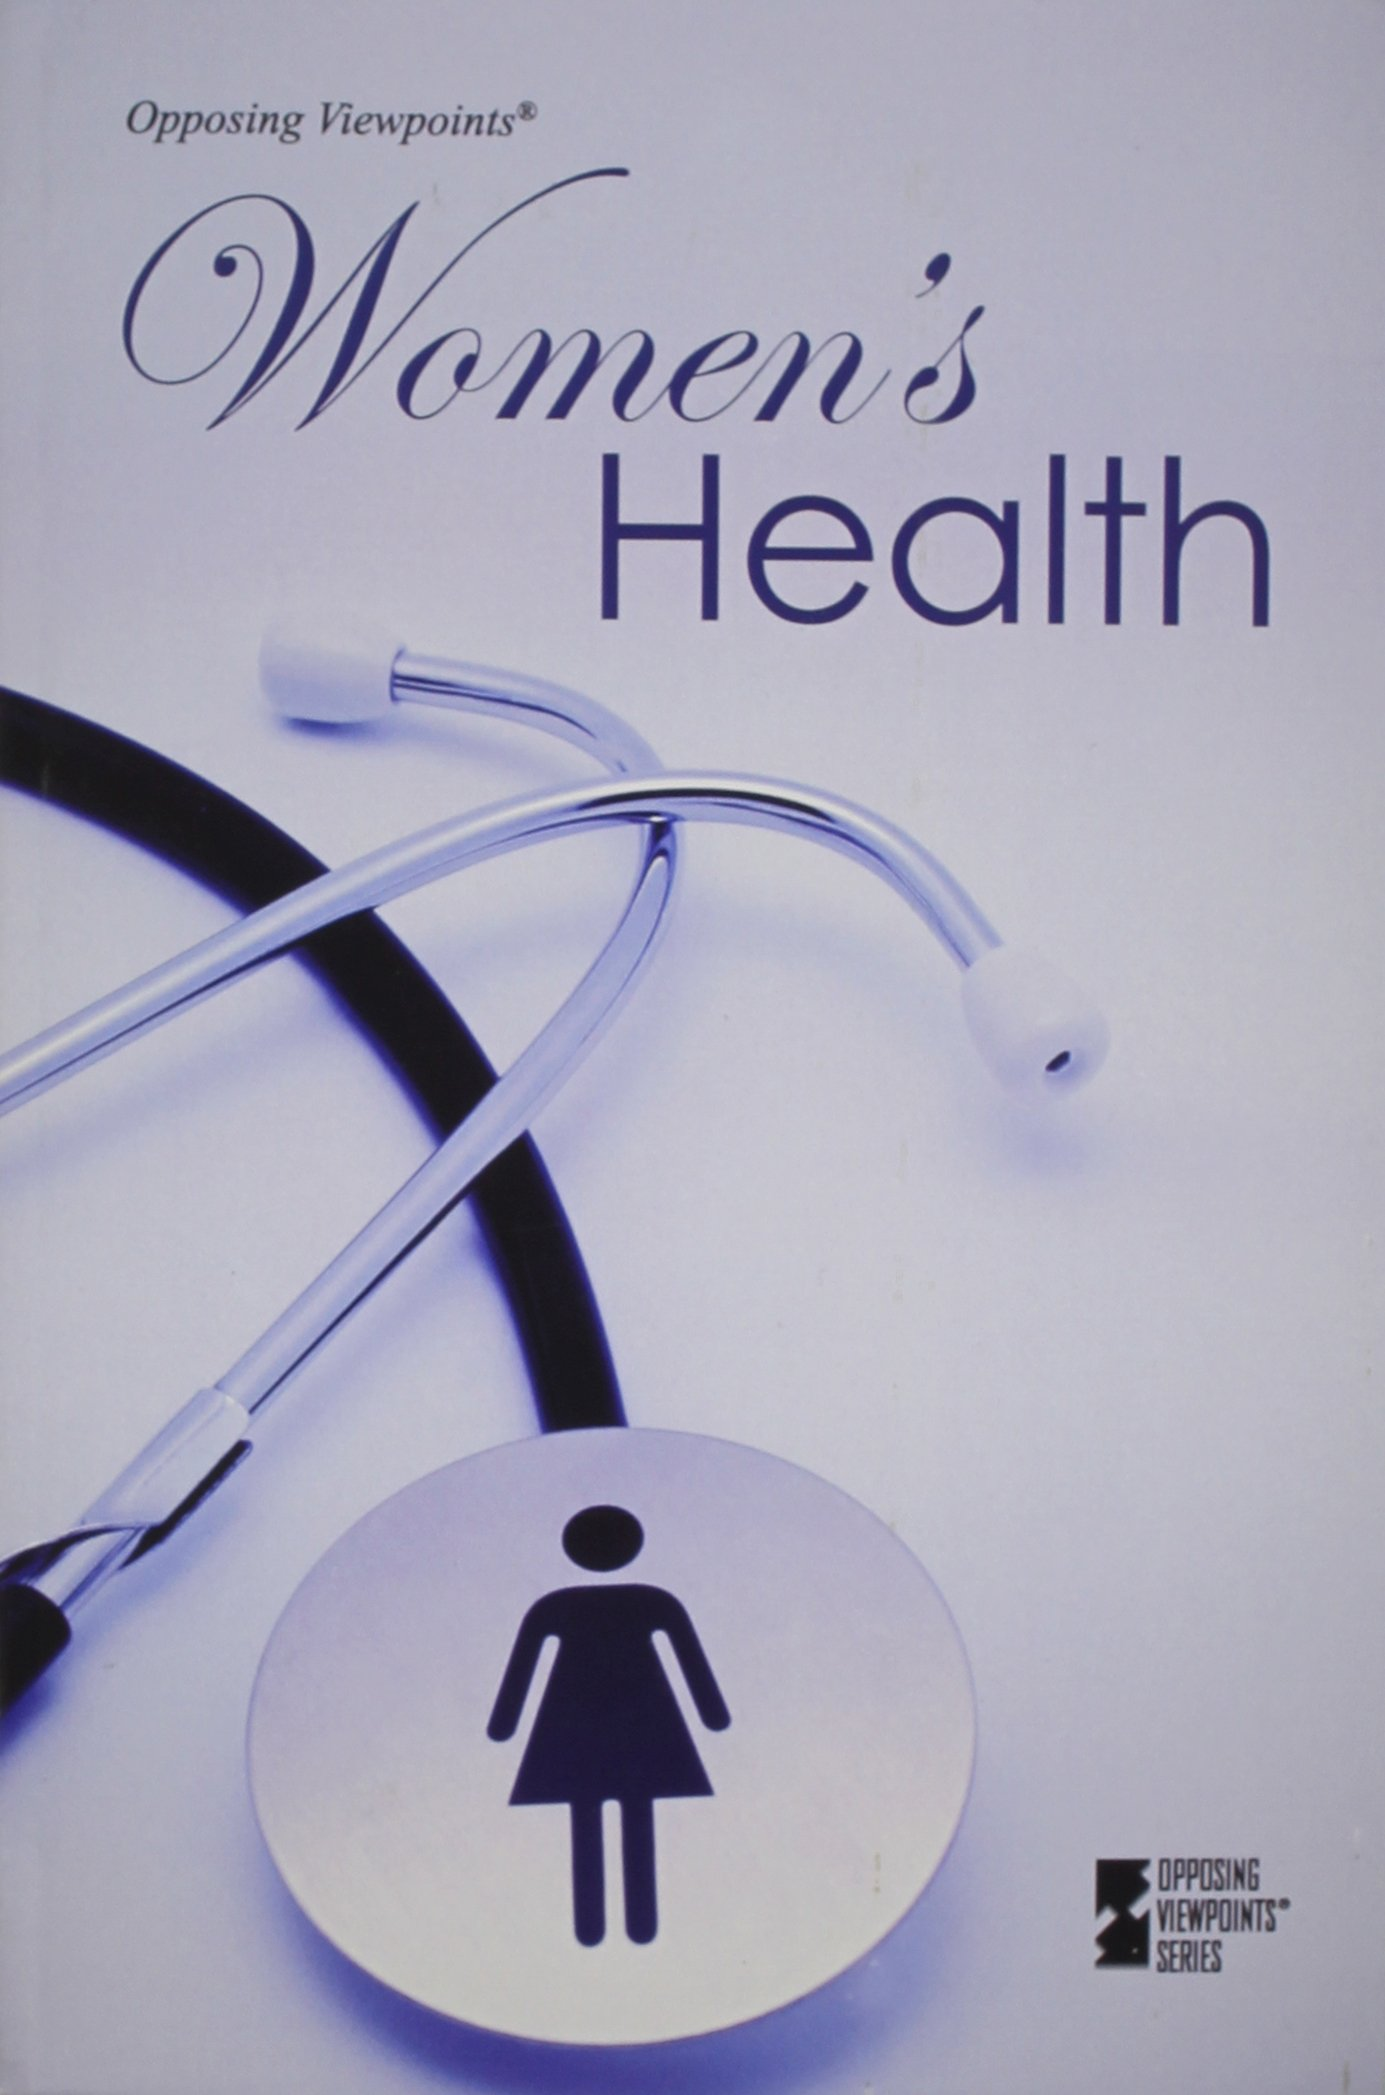 Women's Health (Opposing Viewpoints) pdf